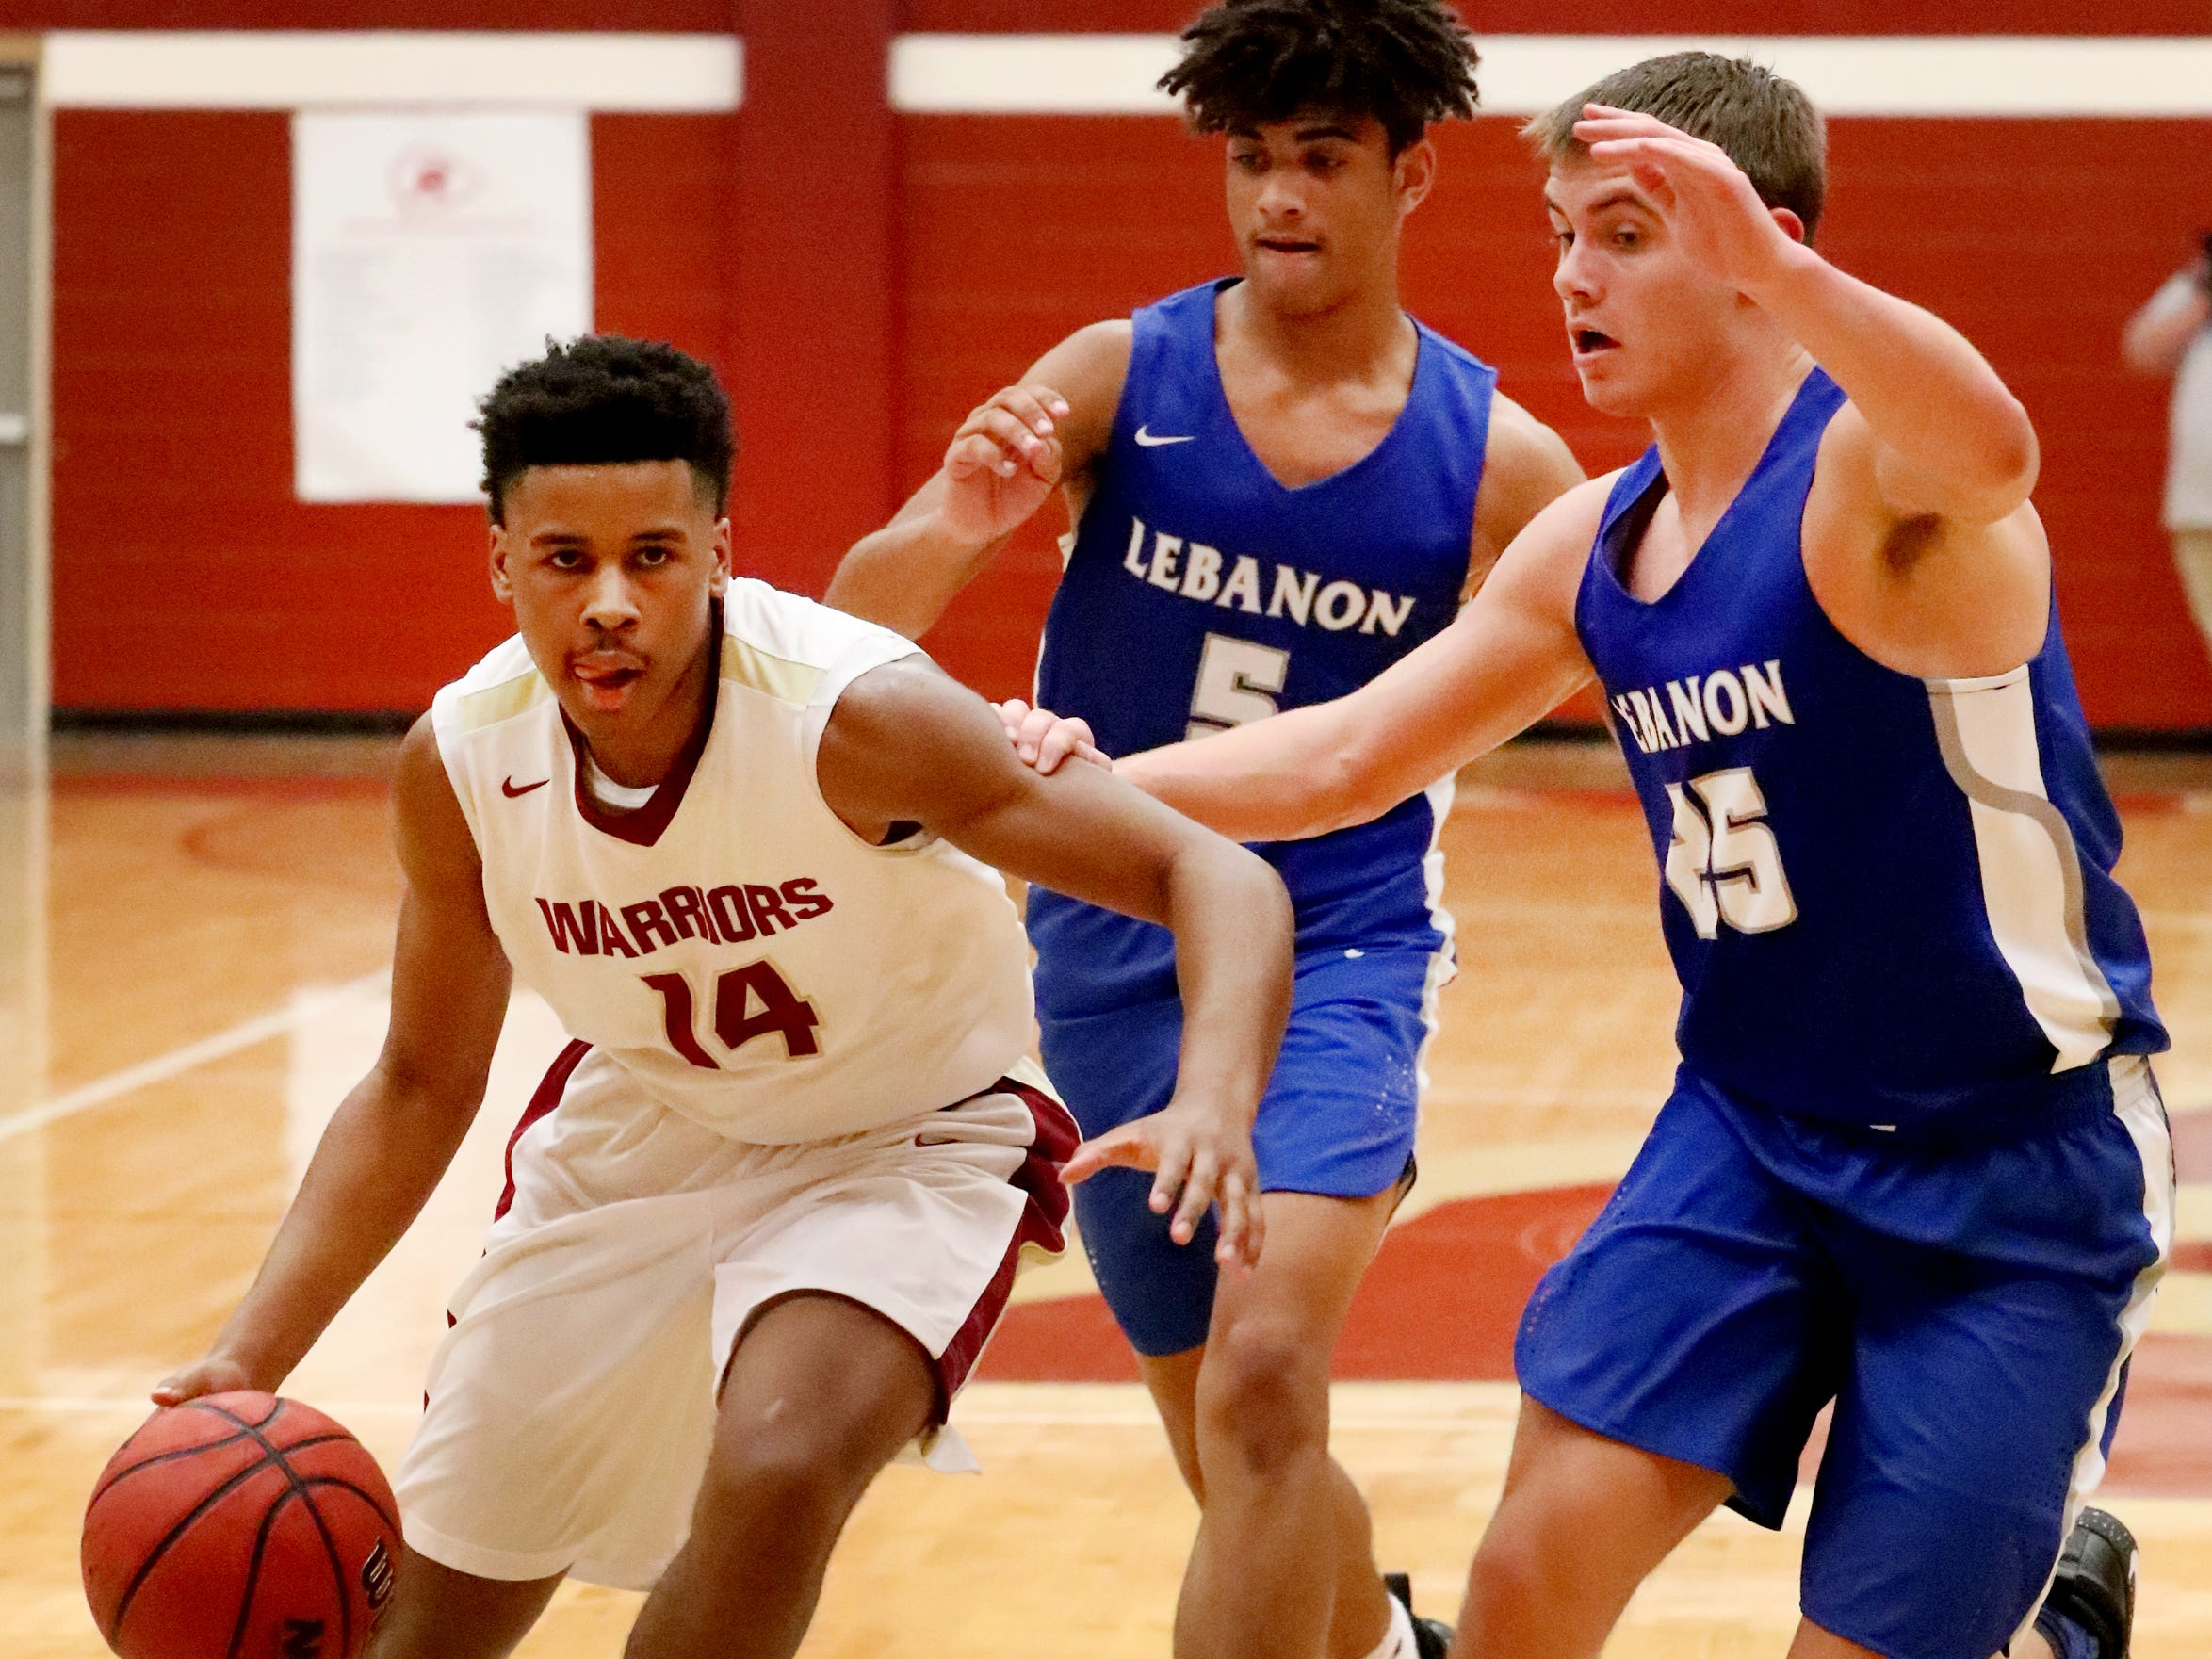 RiverdaleÕs Deron Perry (14) drives toward the basket as Lebanon's Jeremiah Hastings (5) and Lebanon's Ethan Njezic (25) cover him during the game at Riverdale on Friday, Nov. 30, 2018.